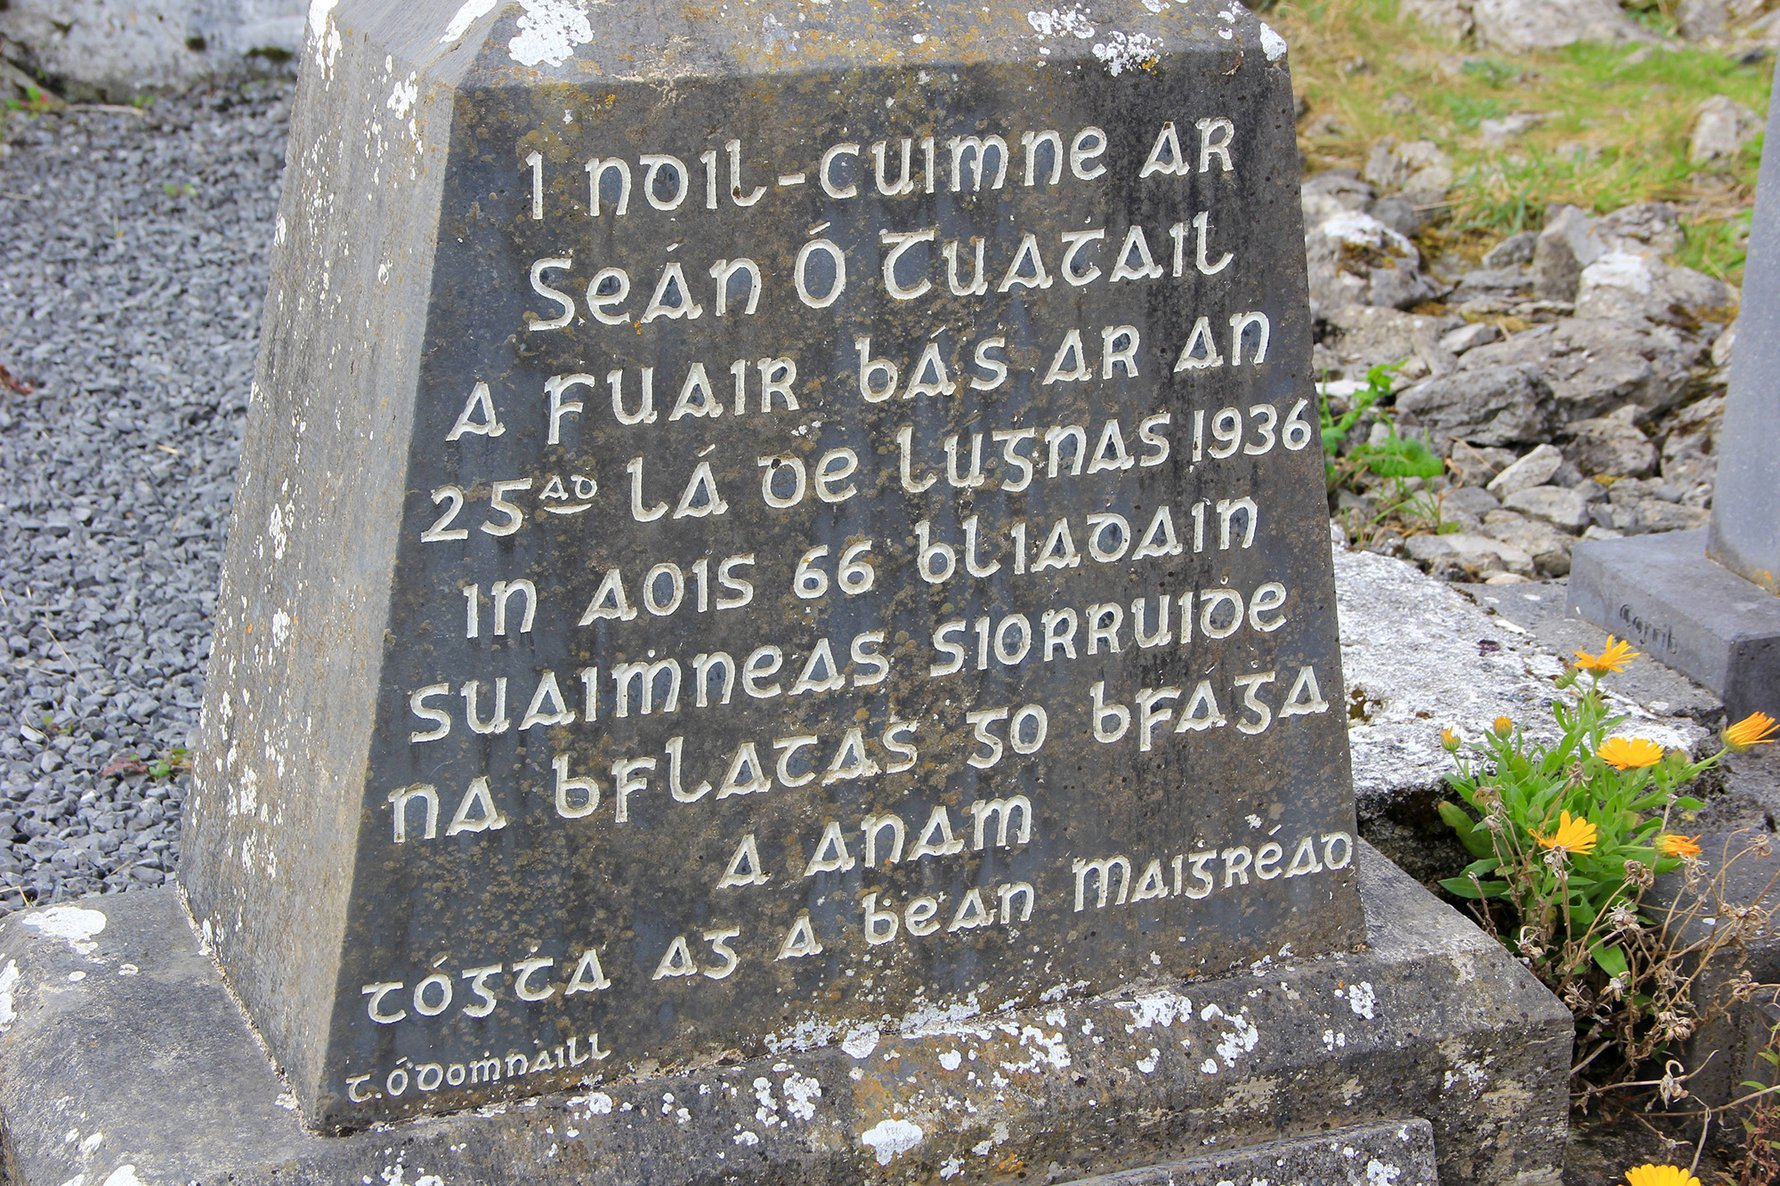 Learn Gaelic Irish - Gaelic Irish on Stone Monument in Ireland © Public Domain